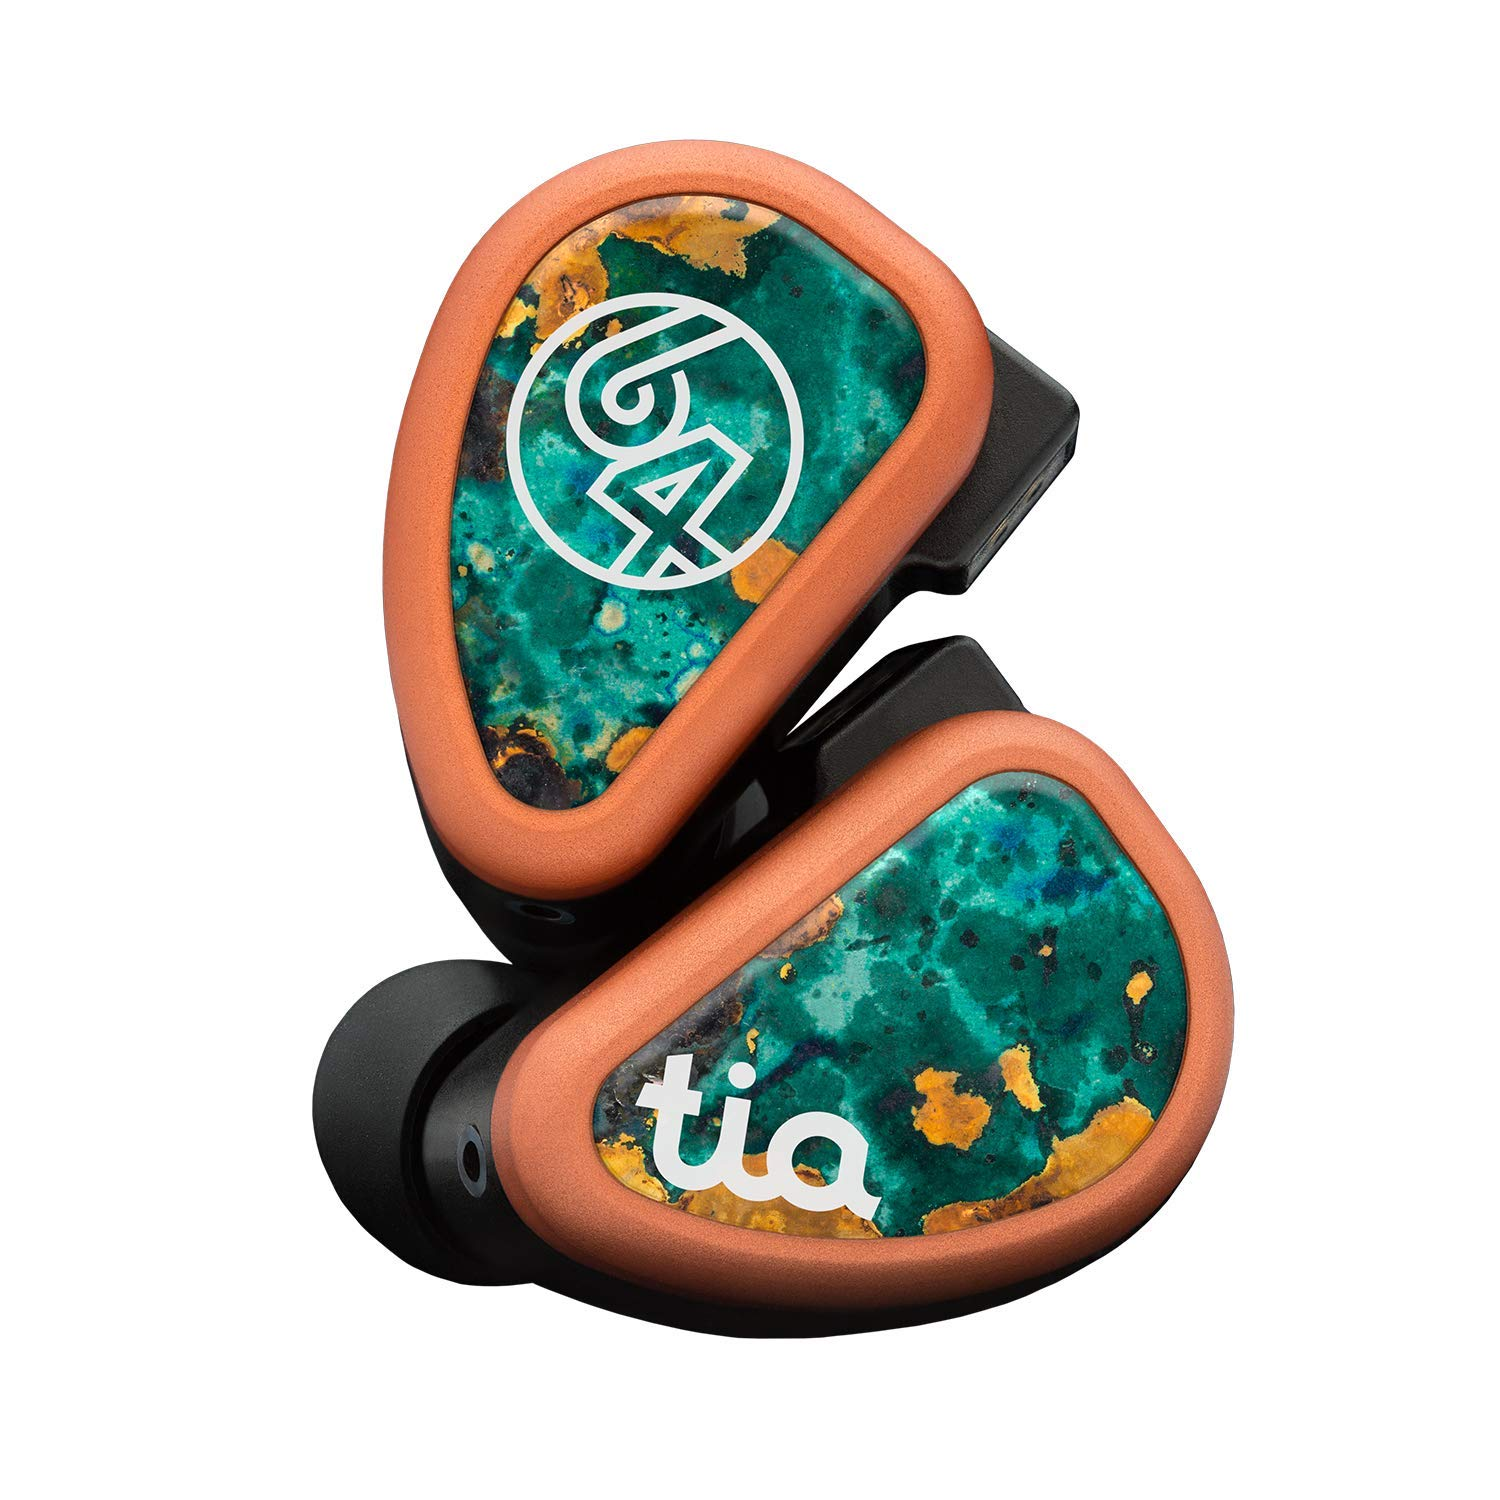 64 AUDIO tia Fourté イヤホン 64A-0380   B071JXGTHB